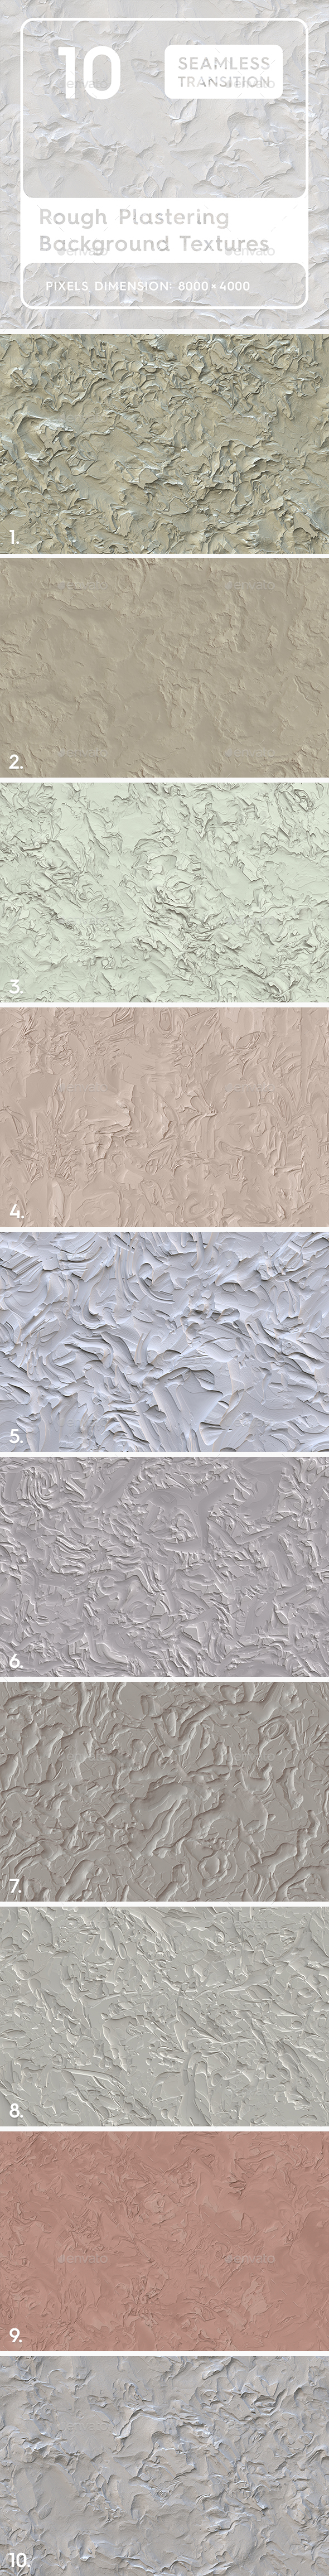 10 Rough Plastering Textures - 3DOcean Item for Sale